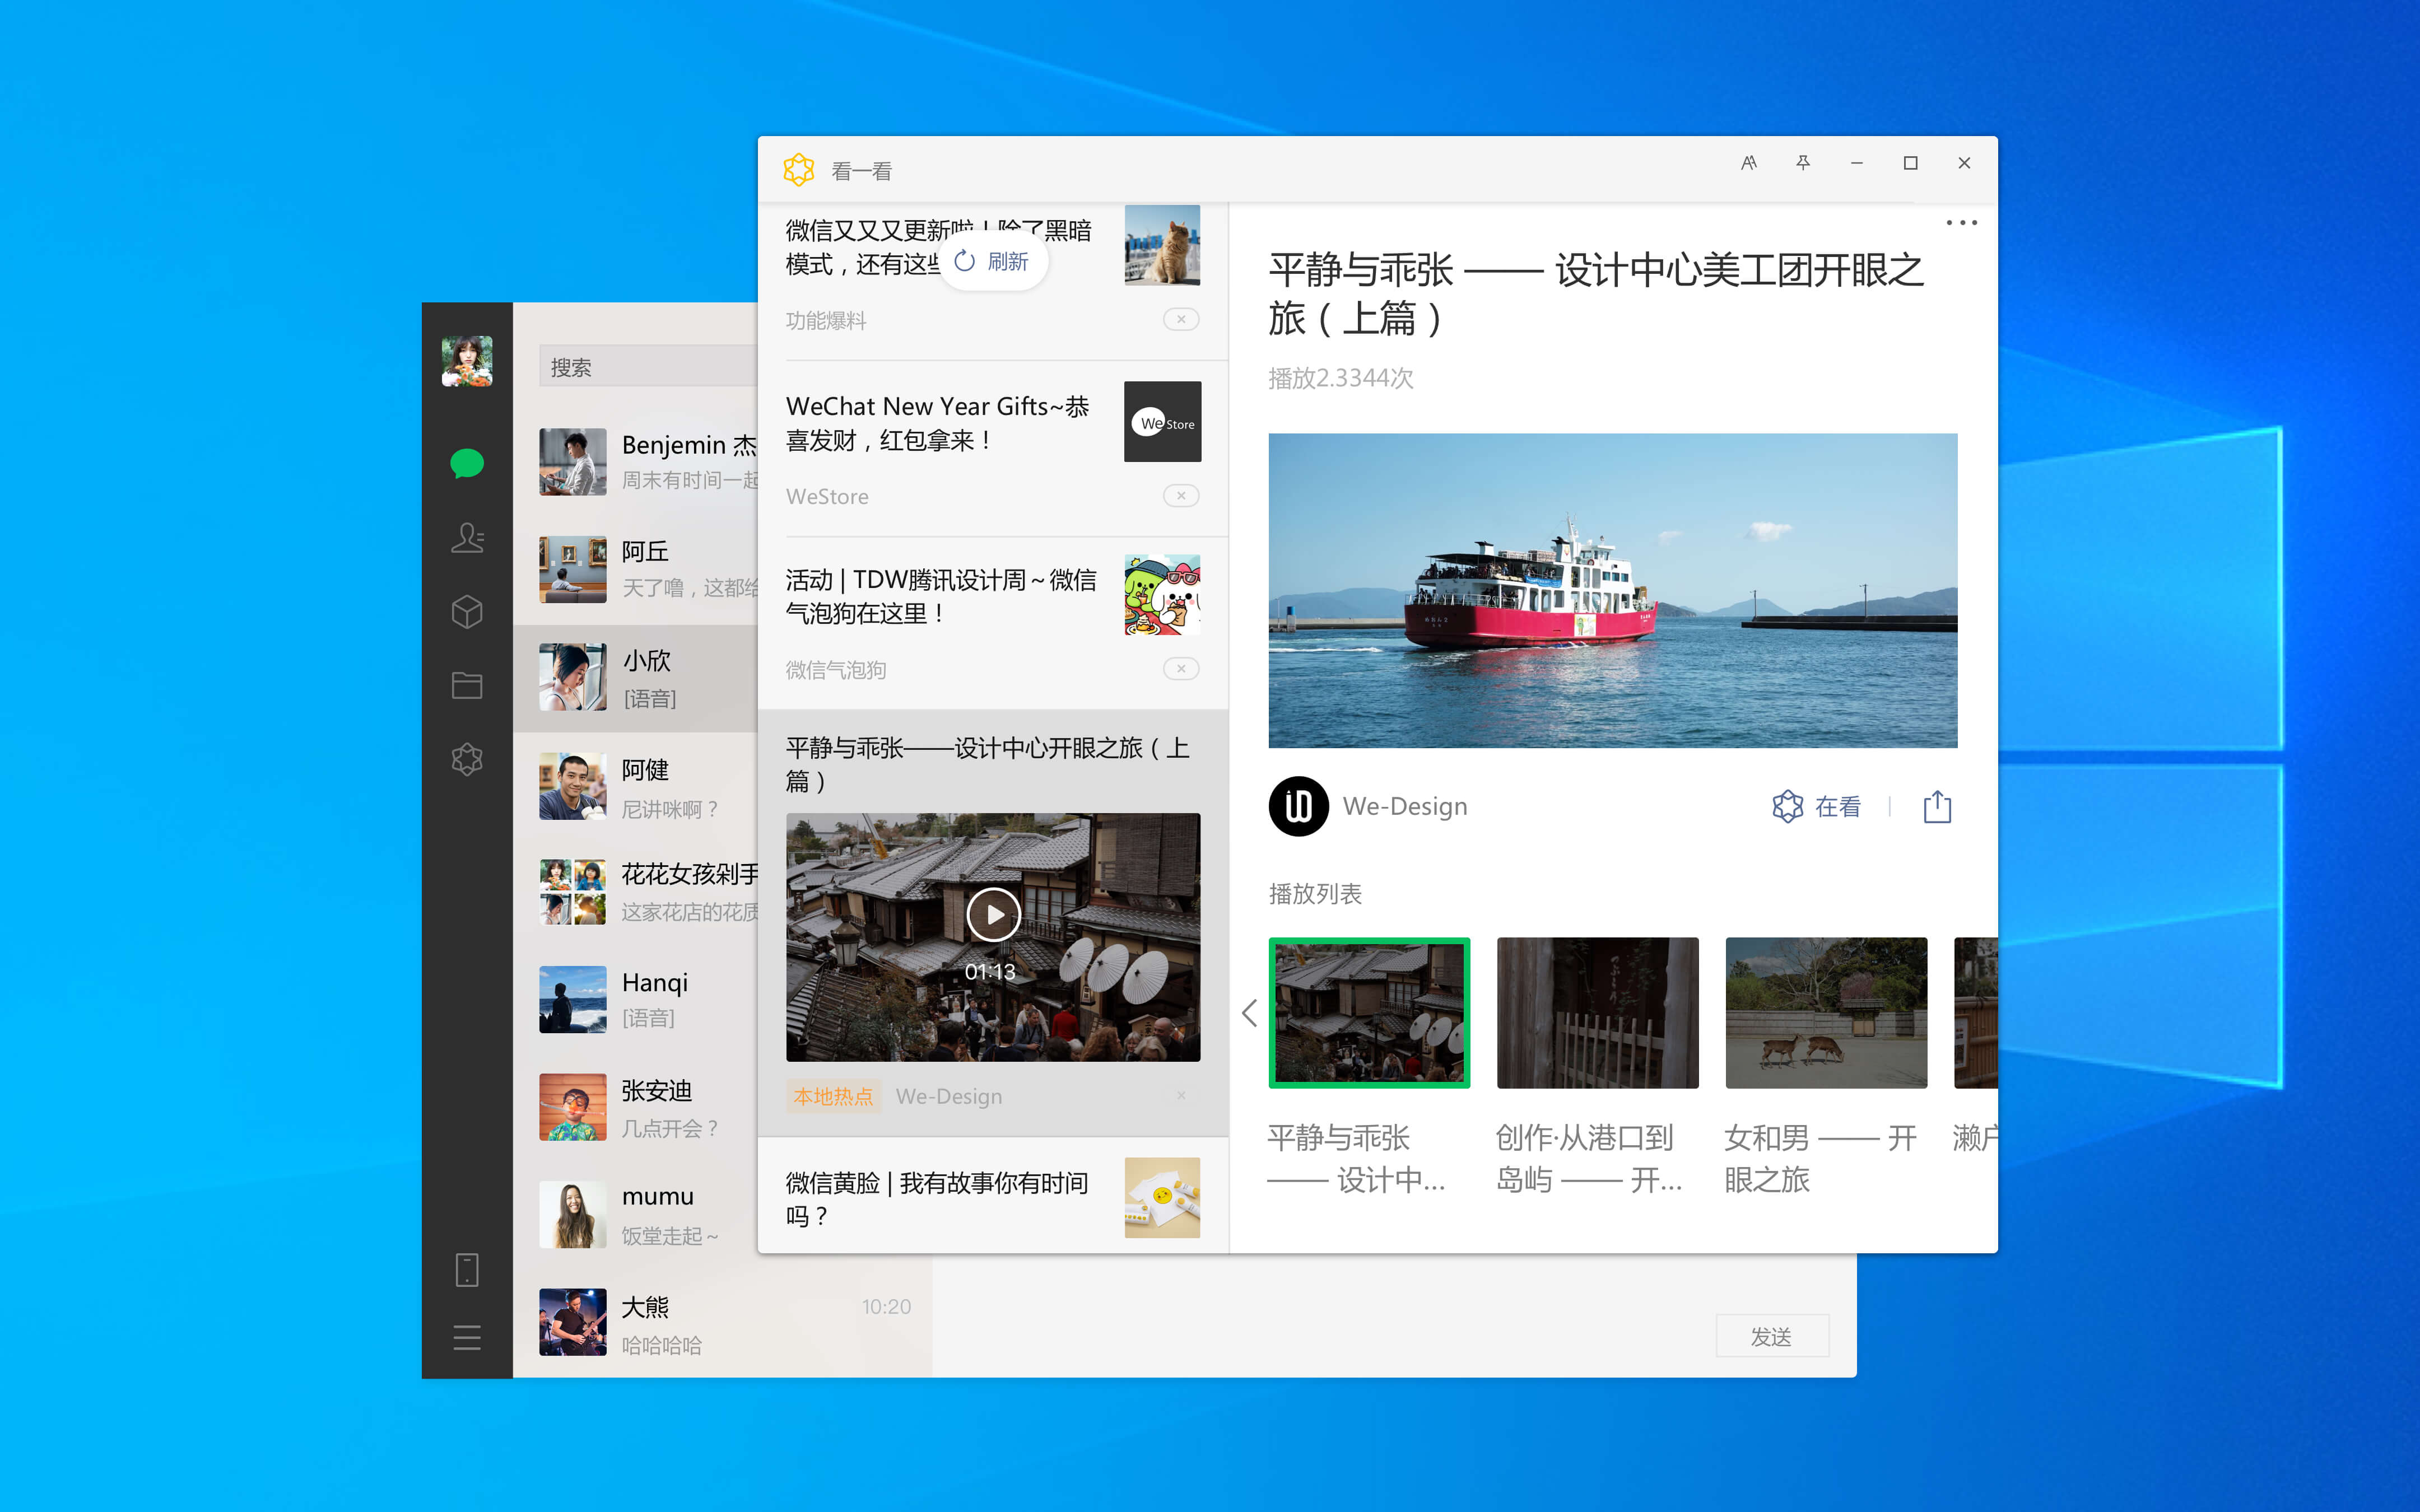 微信 2.8.0 for Windows 下载